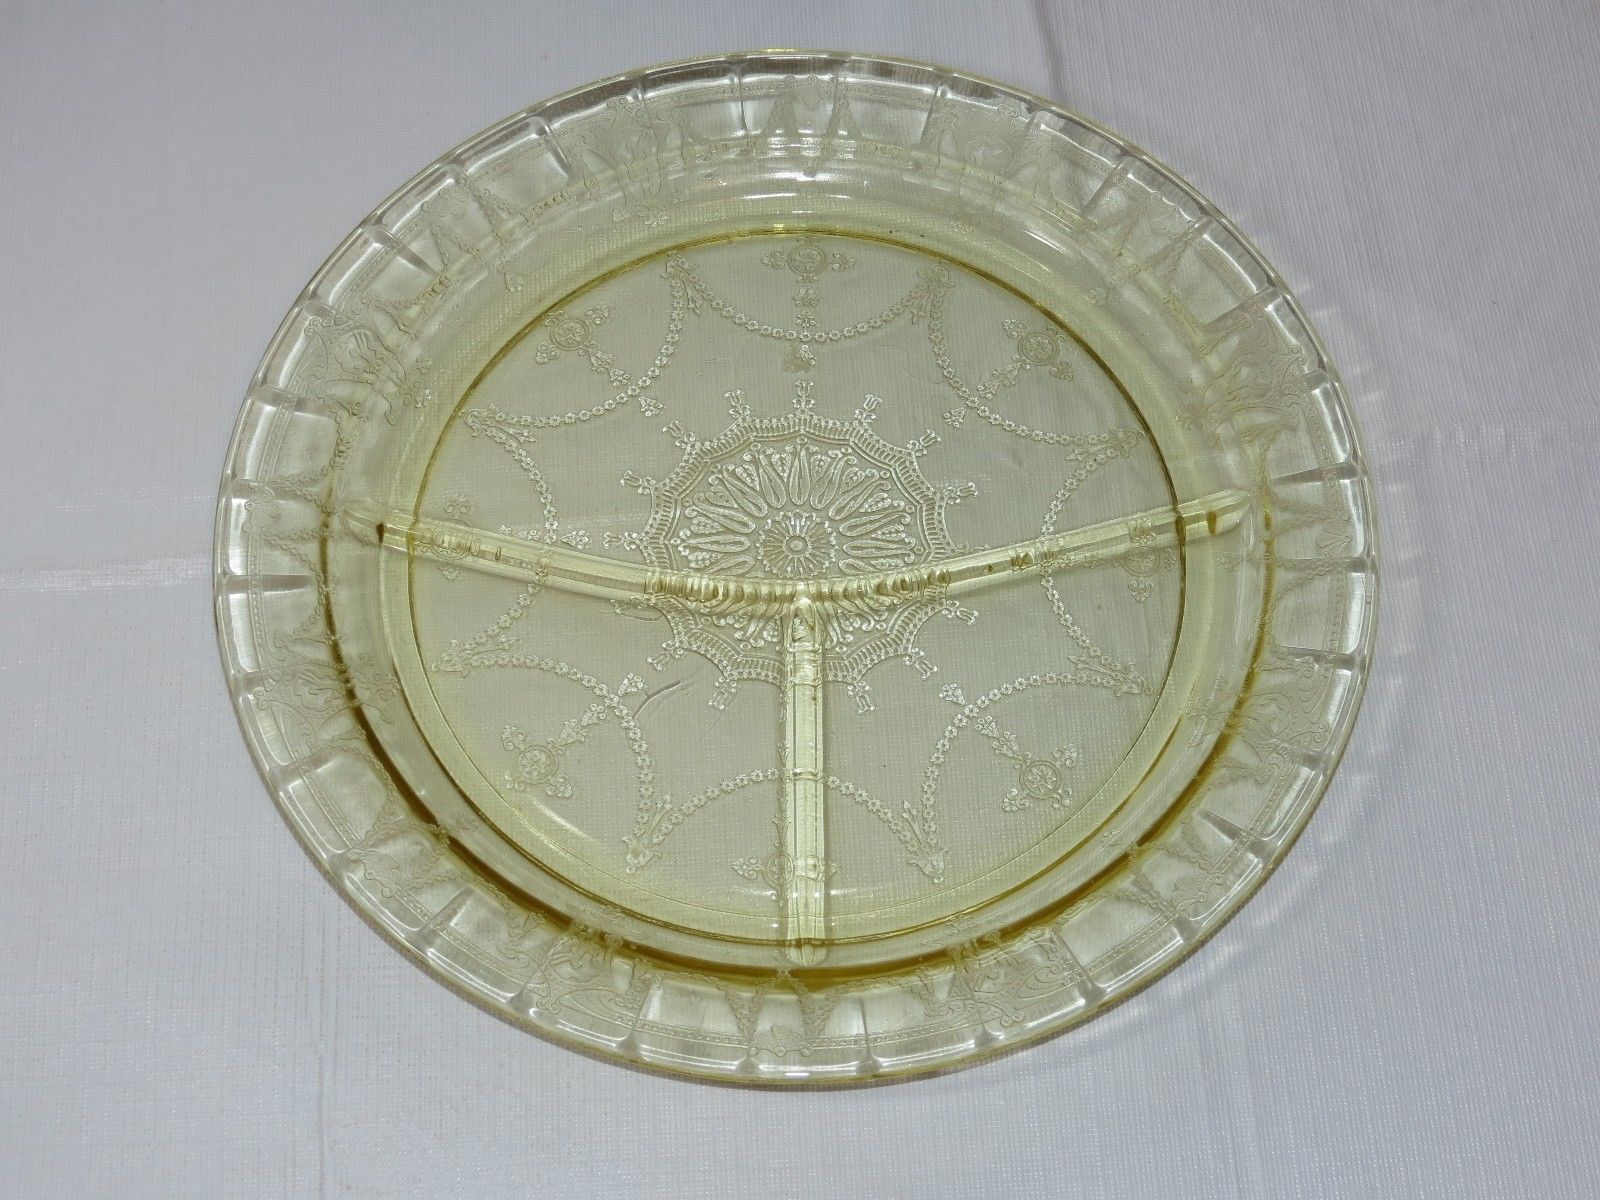 Divided Dinner Plates For Adults